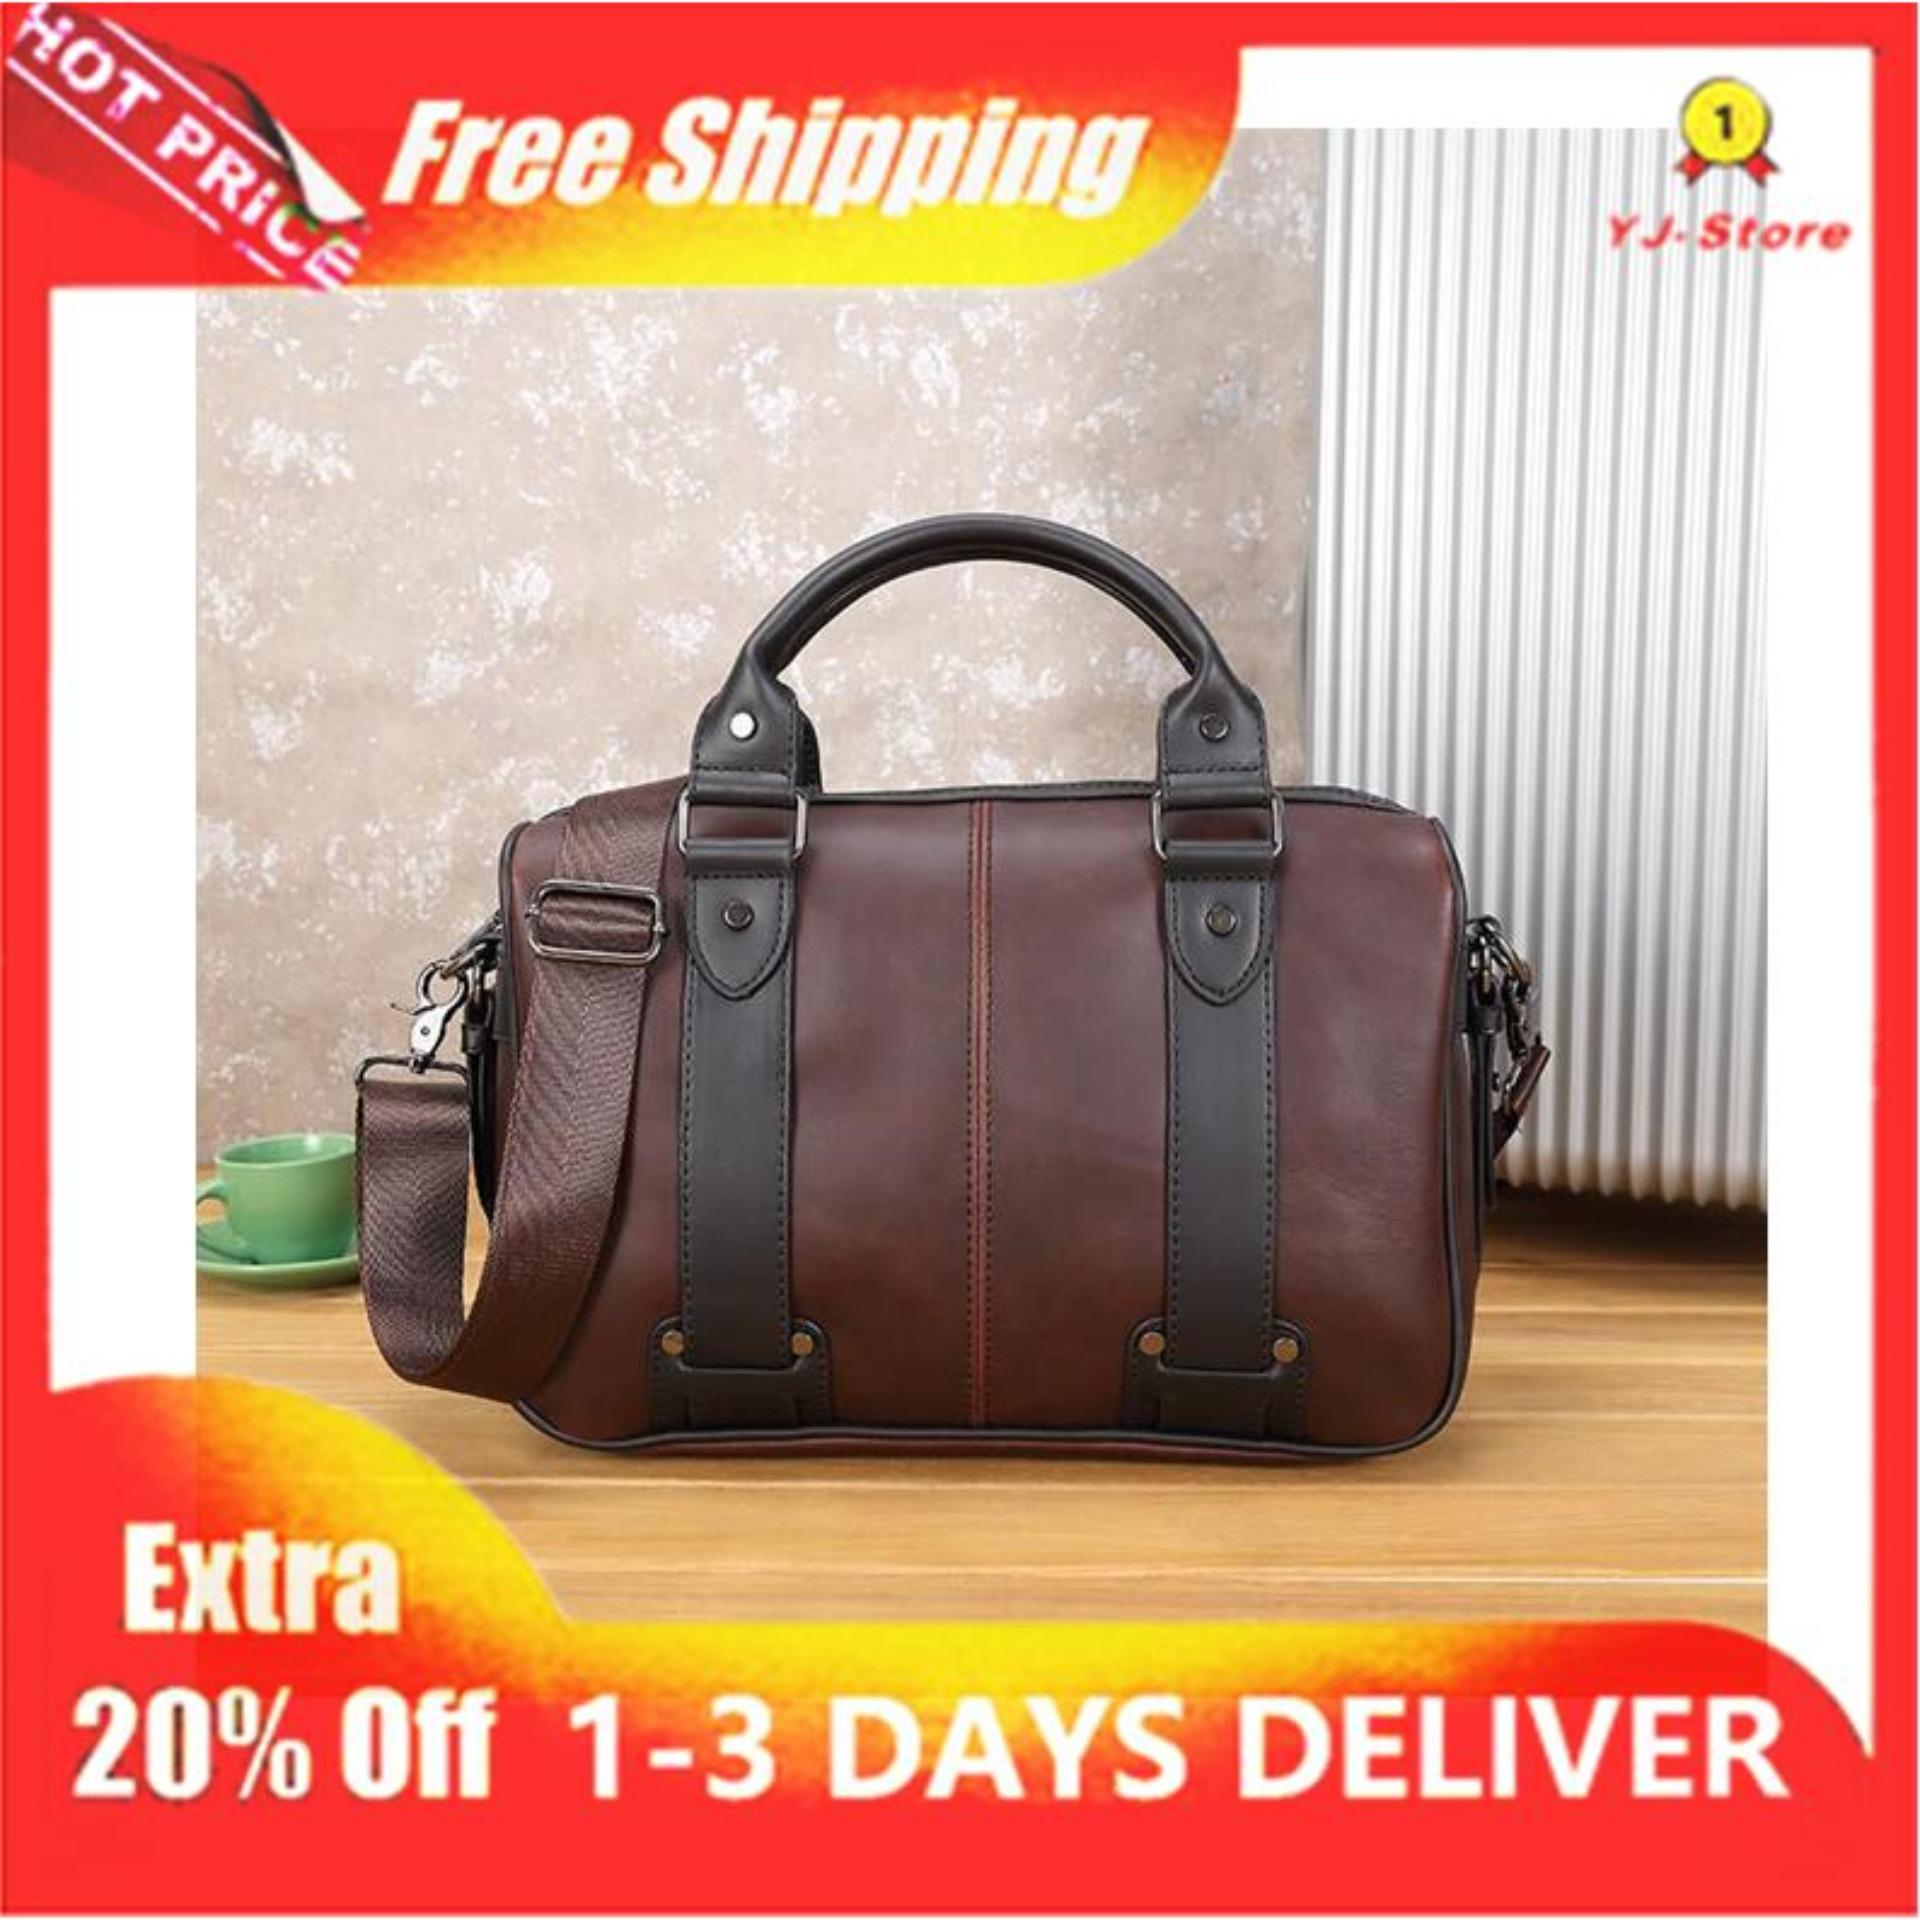 6f781c902 Formal Bags for sale - Formal Bags for Men Online Deals & Prices in ...